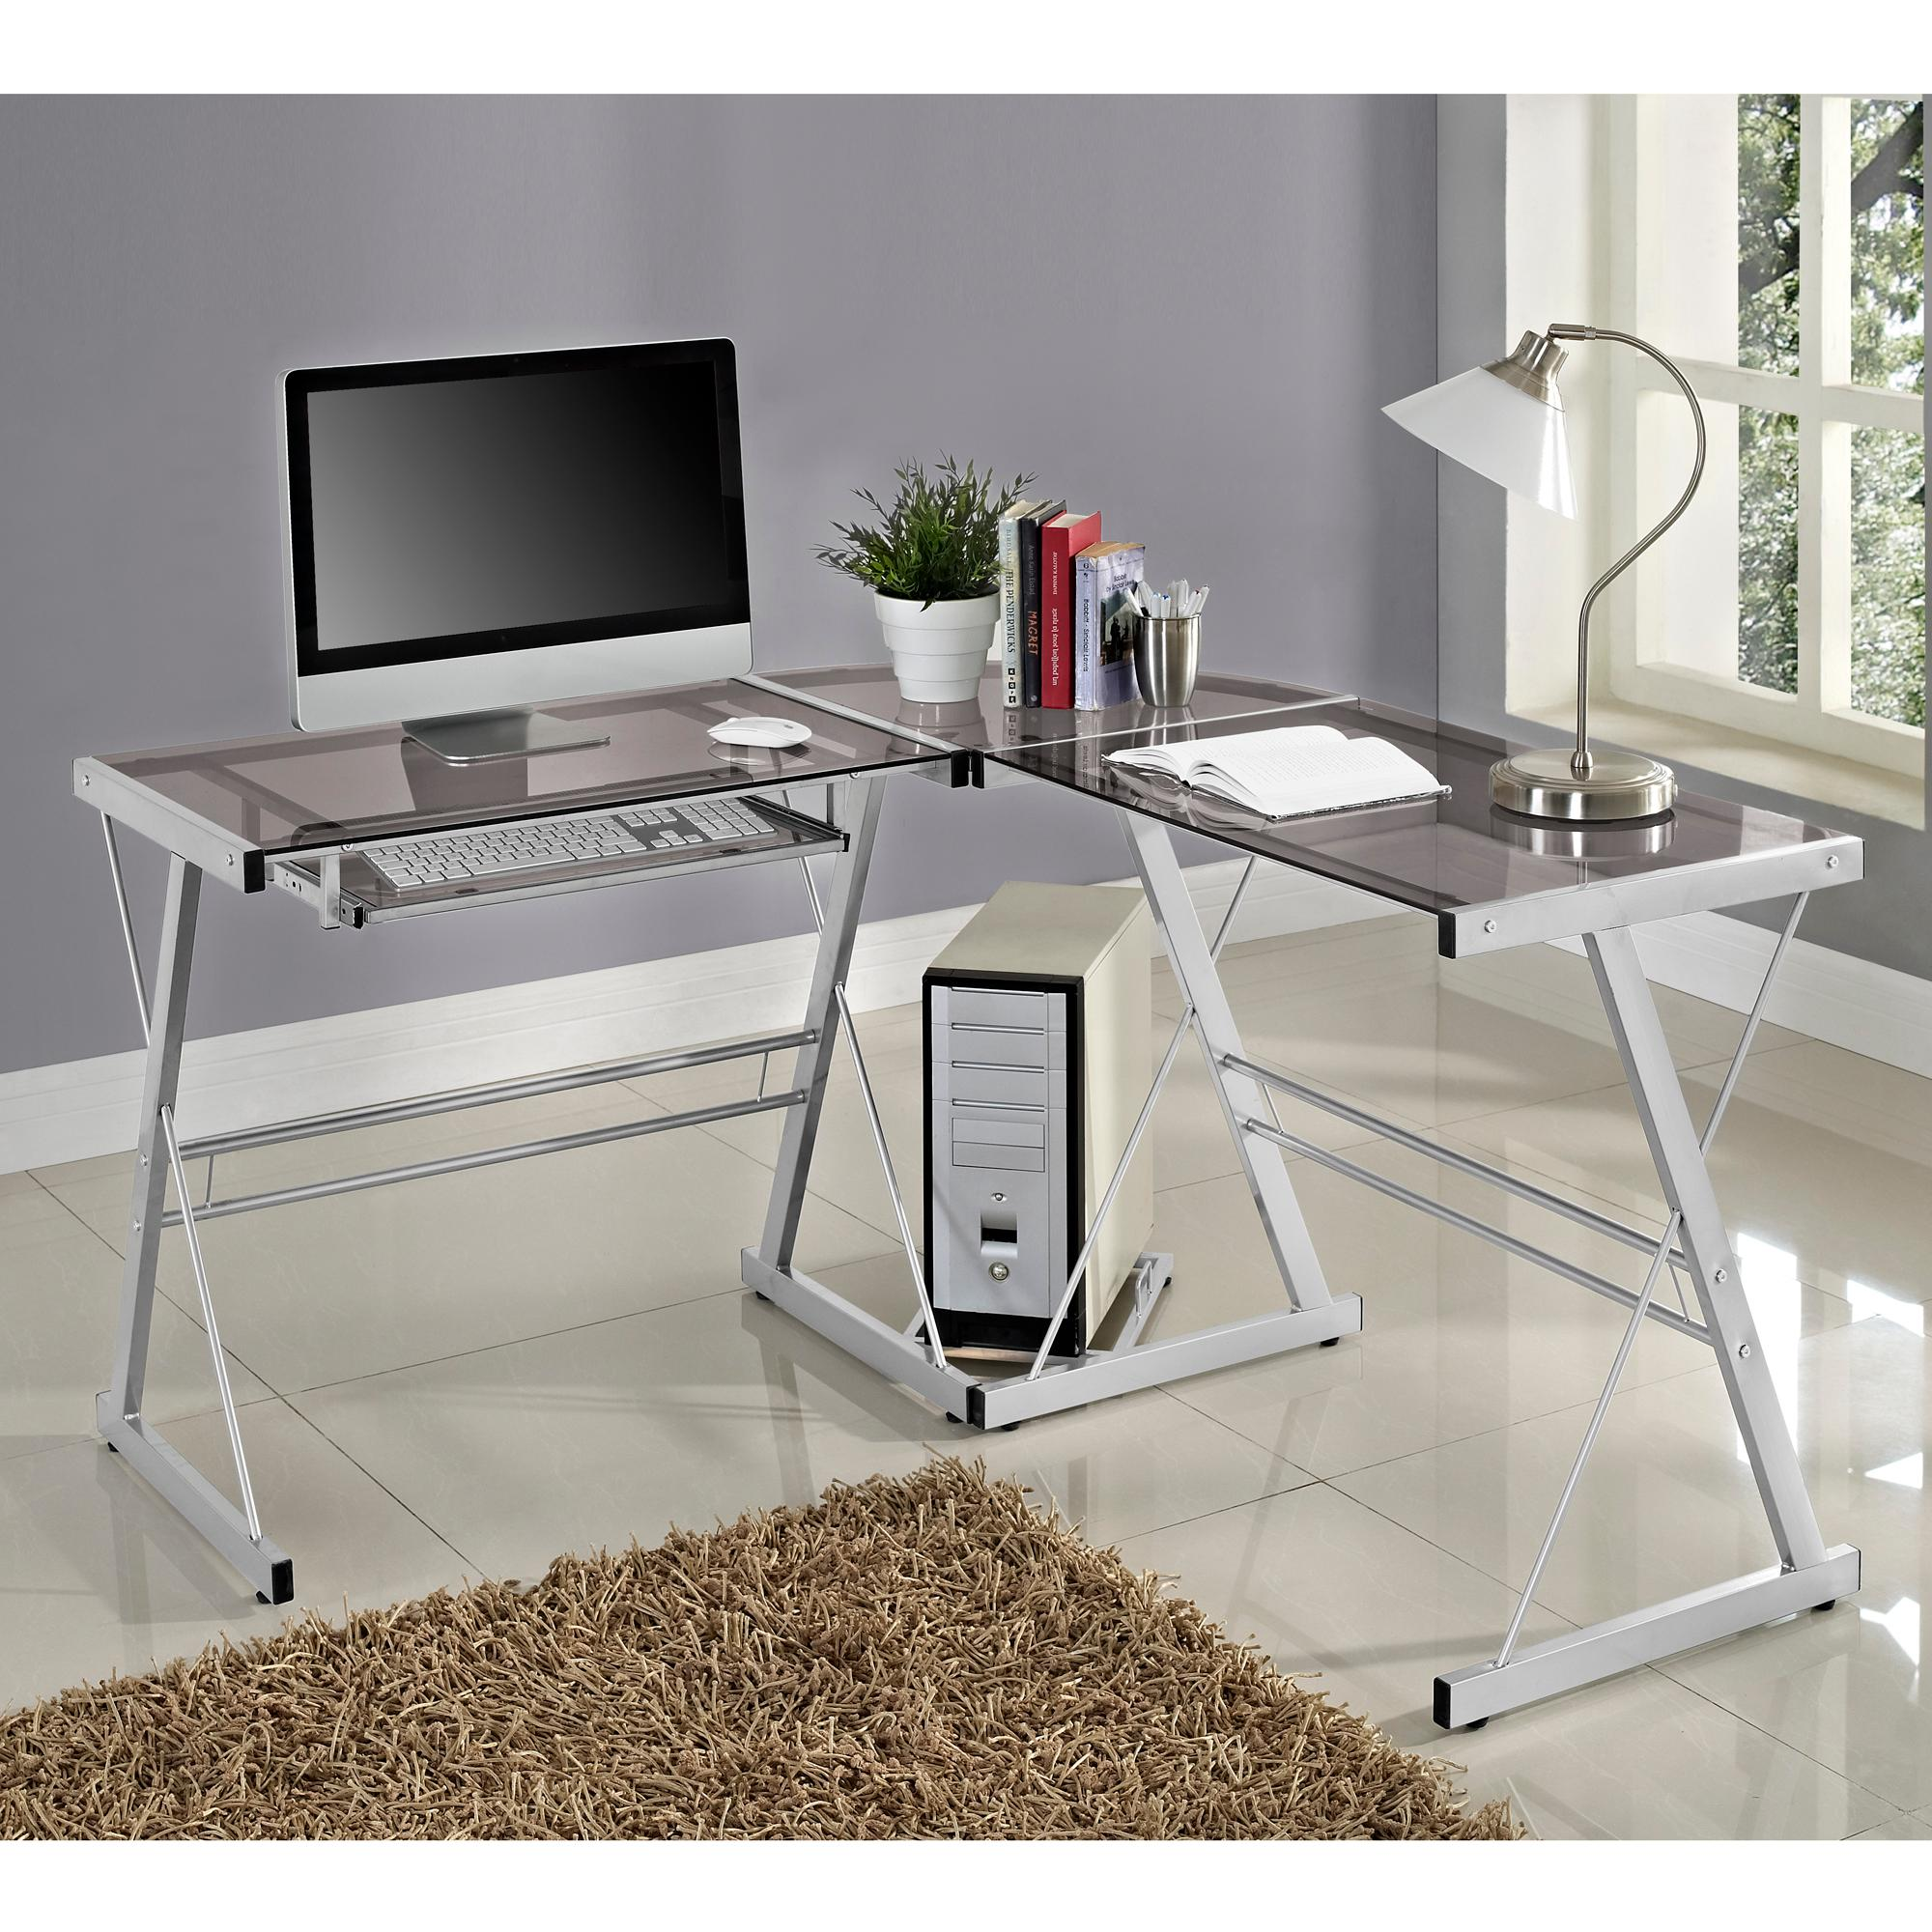 favorable modern taffette computer designs writing desk glass